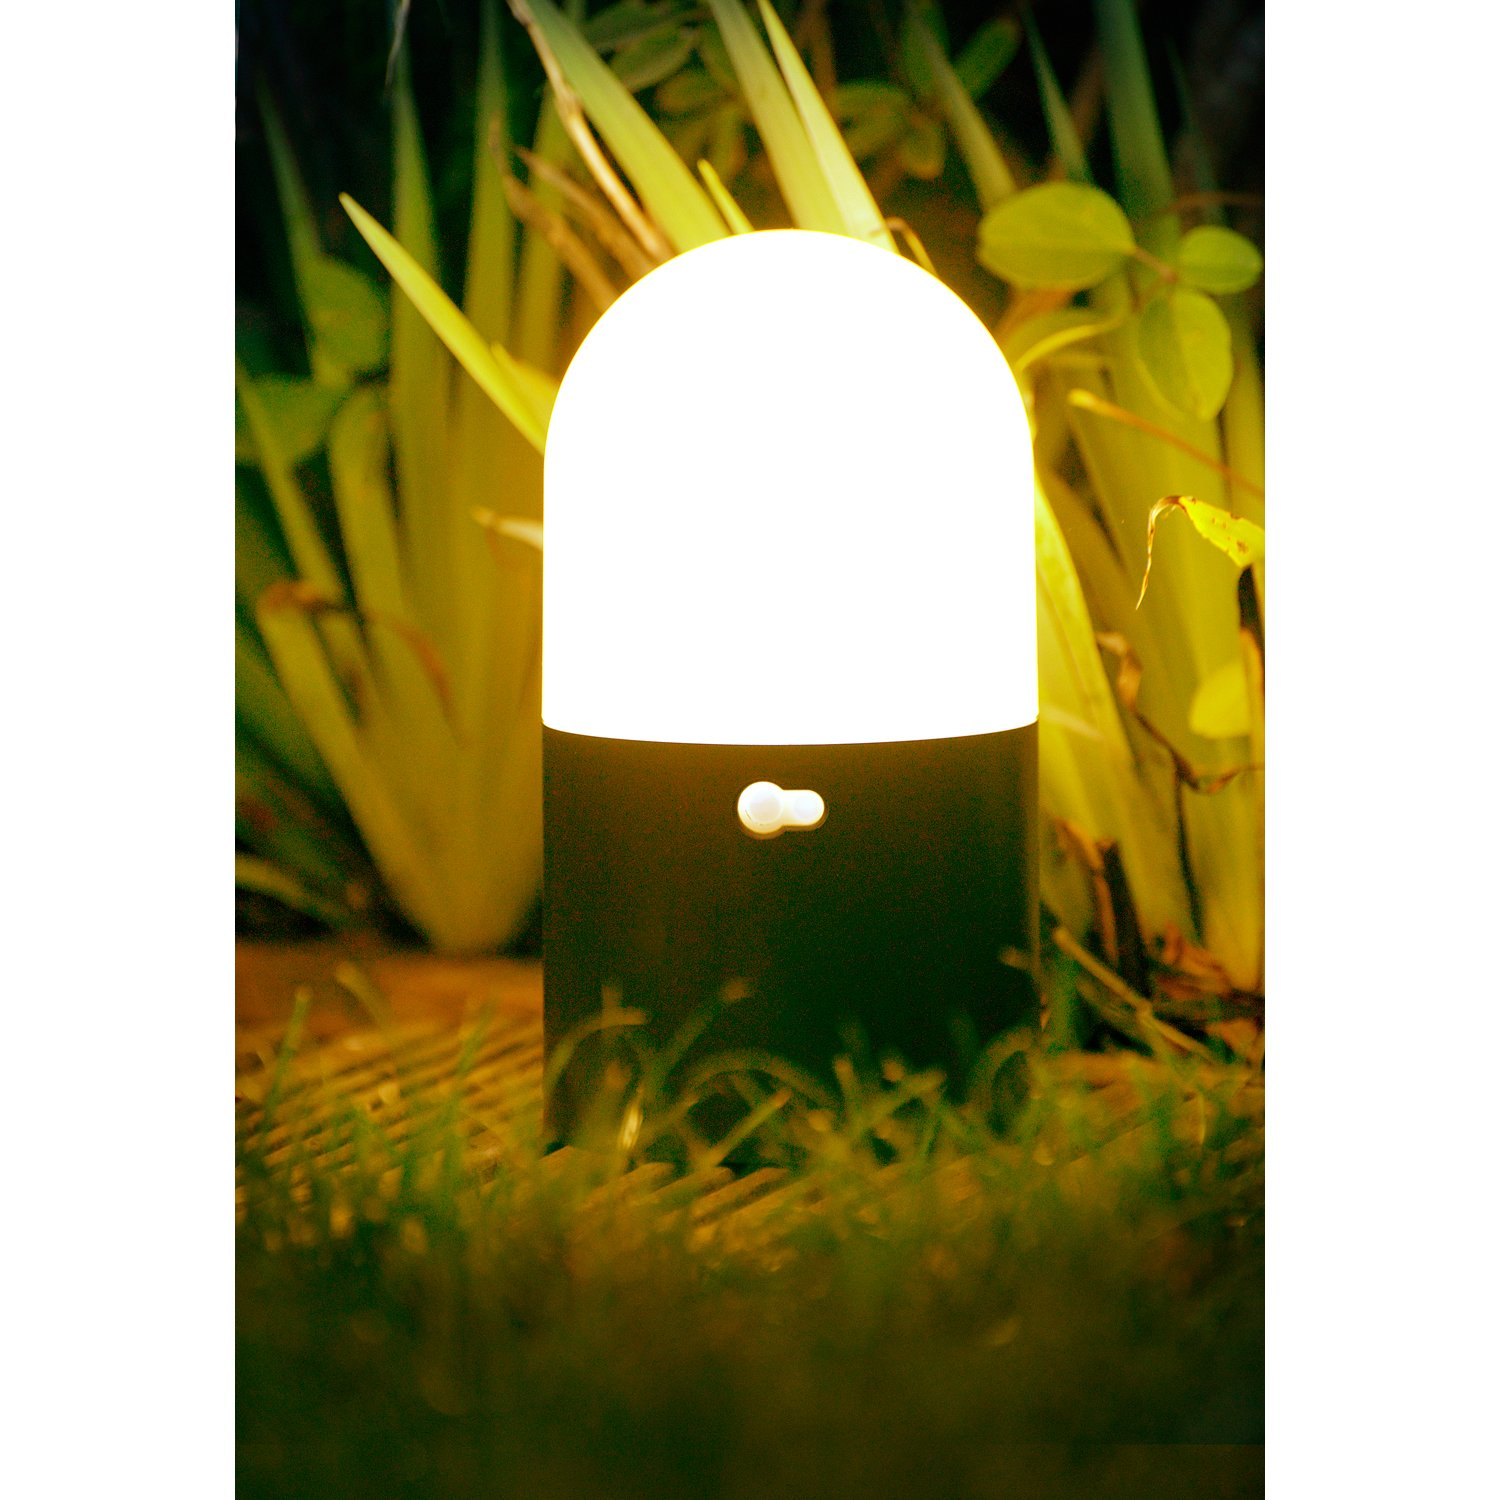 Auraglow large wireless motion sensor garden path outdoor spike auraglow large wireless motion sensor garden path outdoor spike light battery powered led security lamp amazon lighting aloadofball Gallery